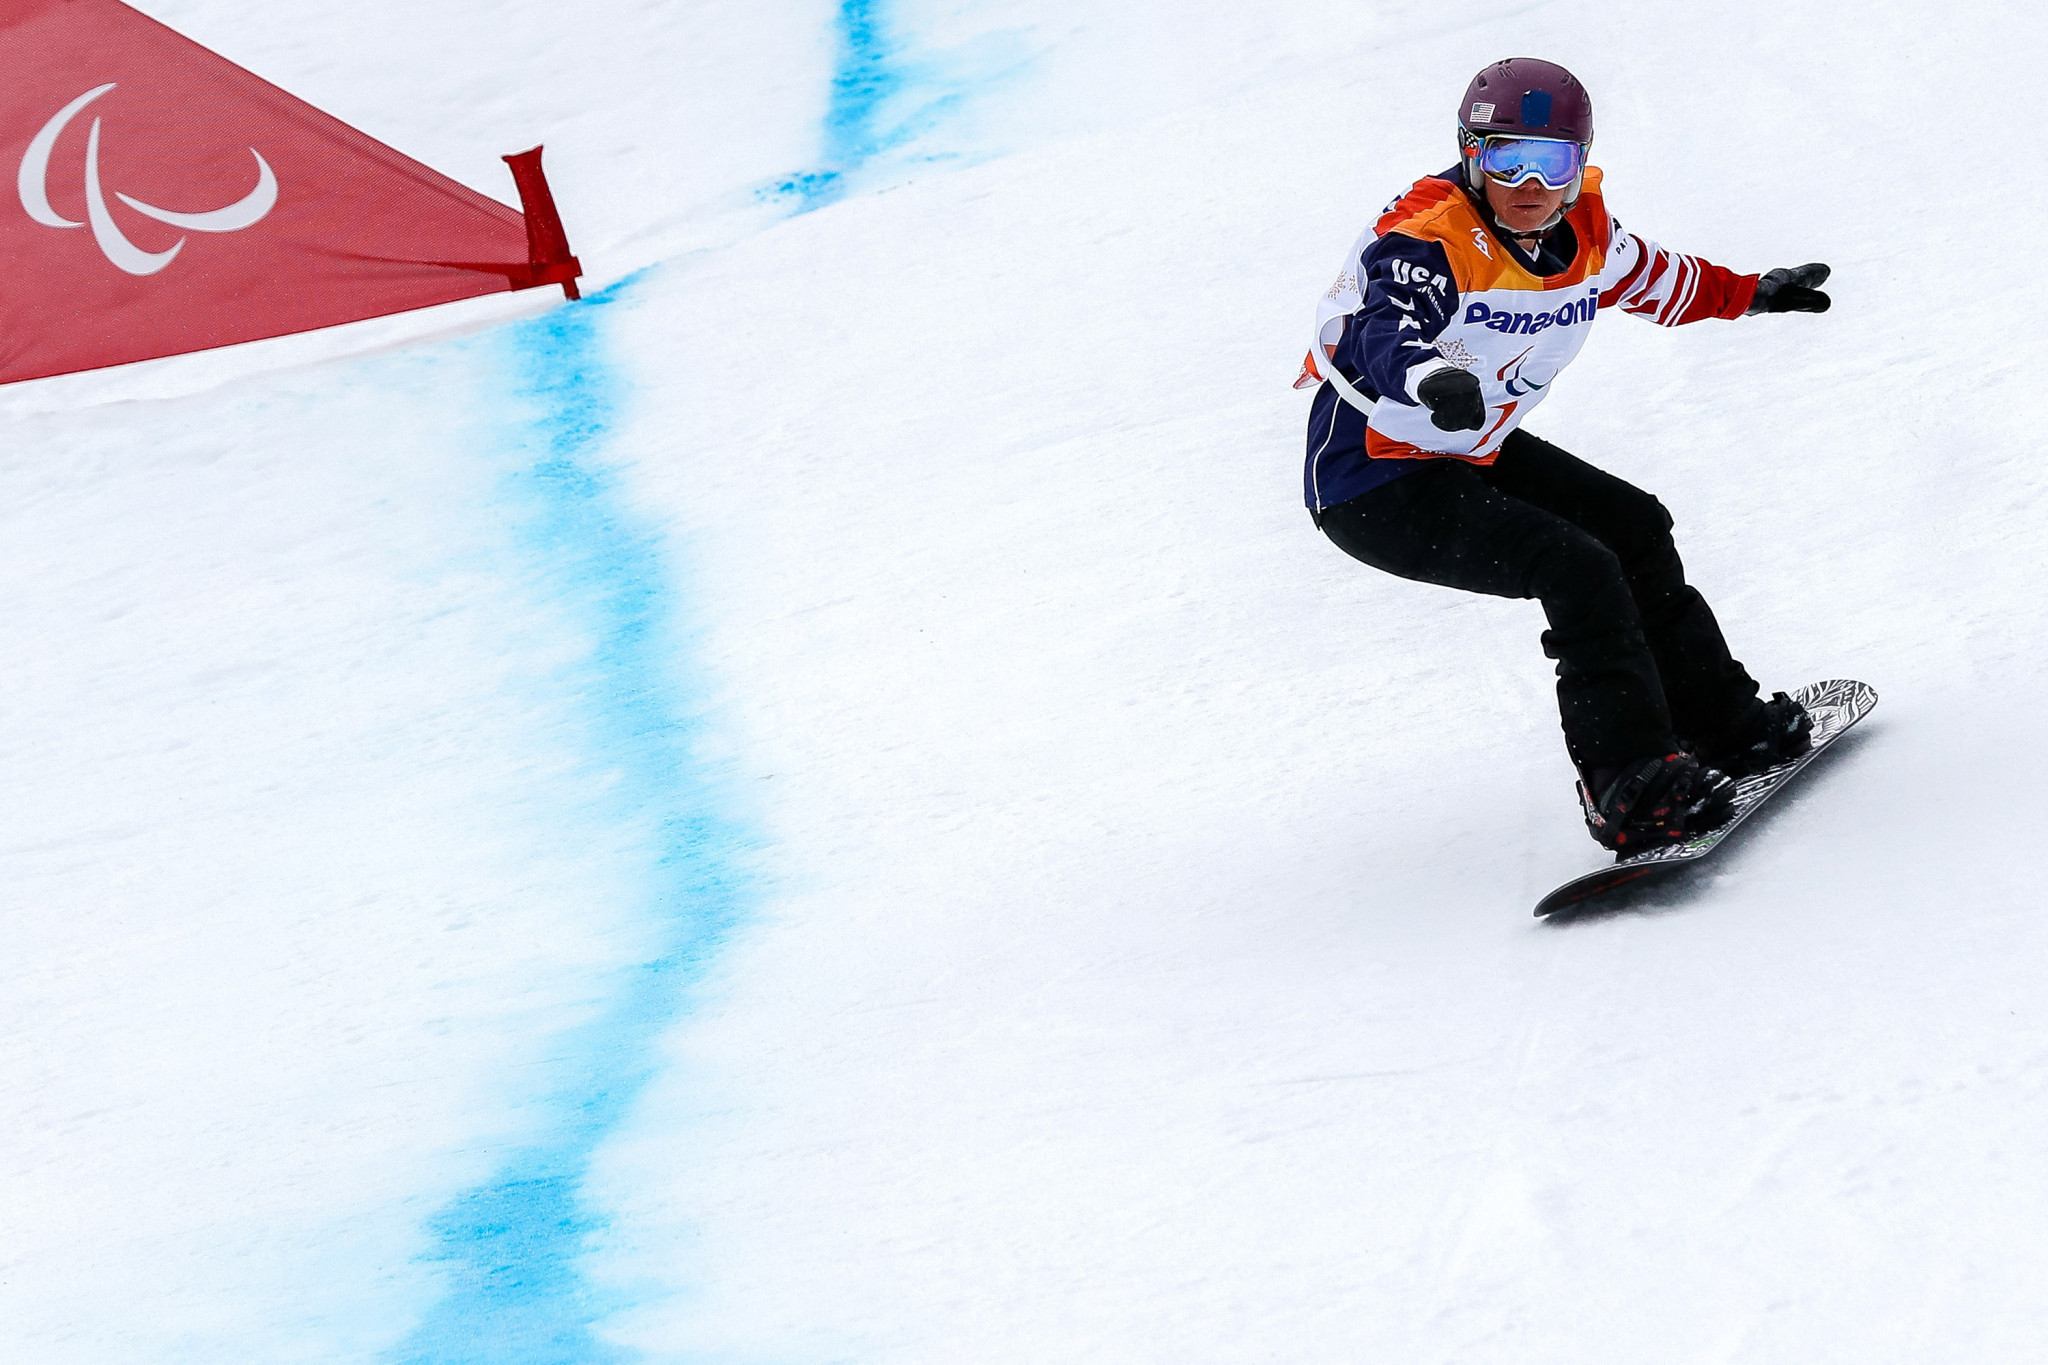 Brittani Coury won a silver medal at the Pyeongchang 2018 Winter Paralympics ©Getty Images